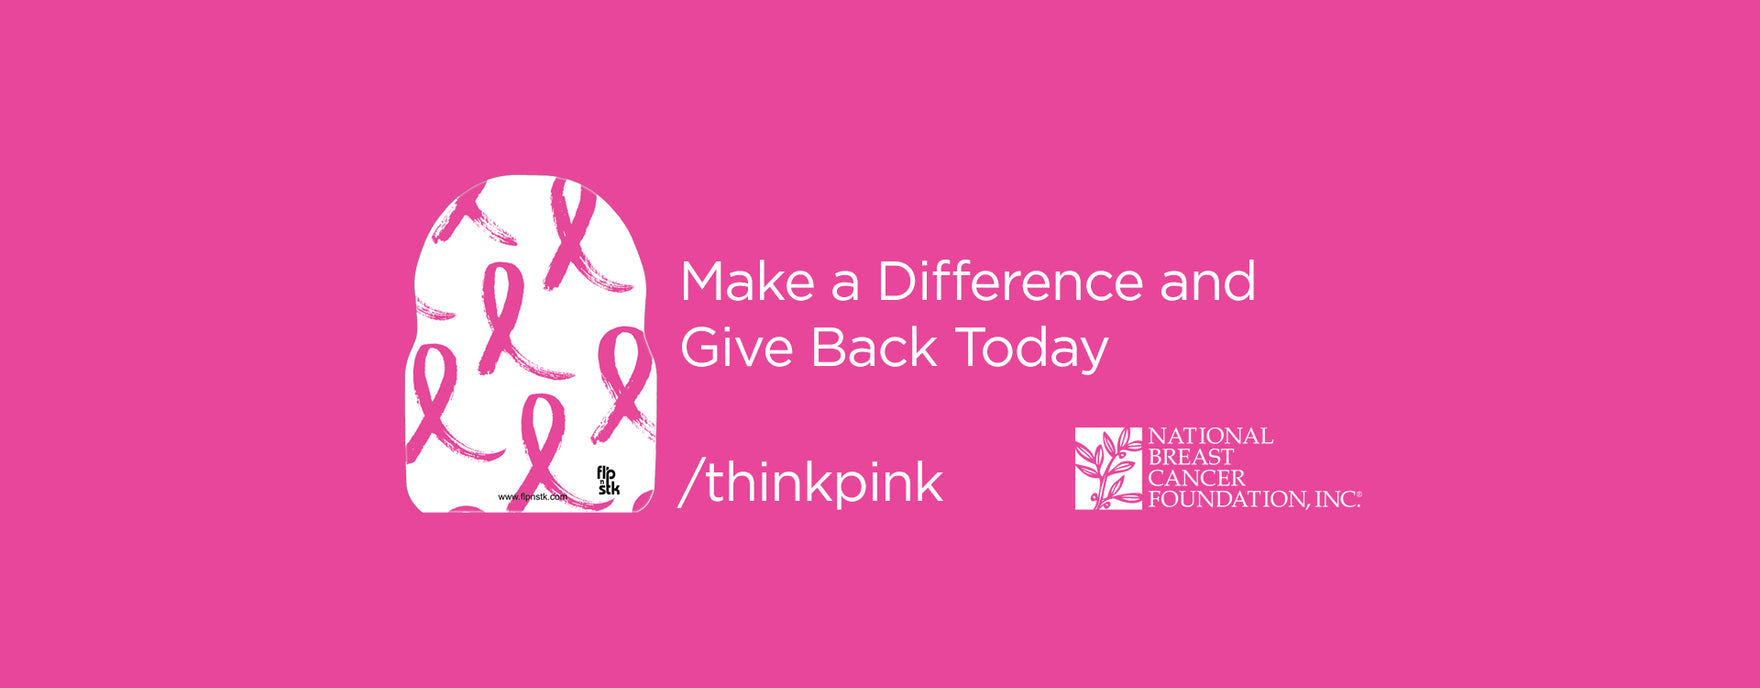 Think Pink and Support Breast Cancer Awareness with Flpnstk c2d834926